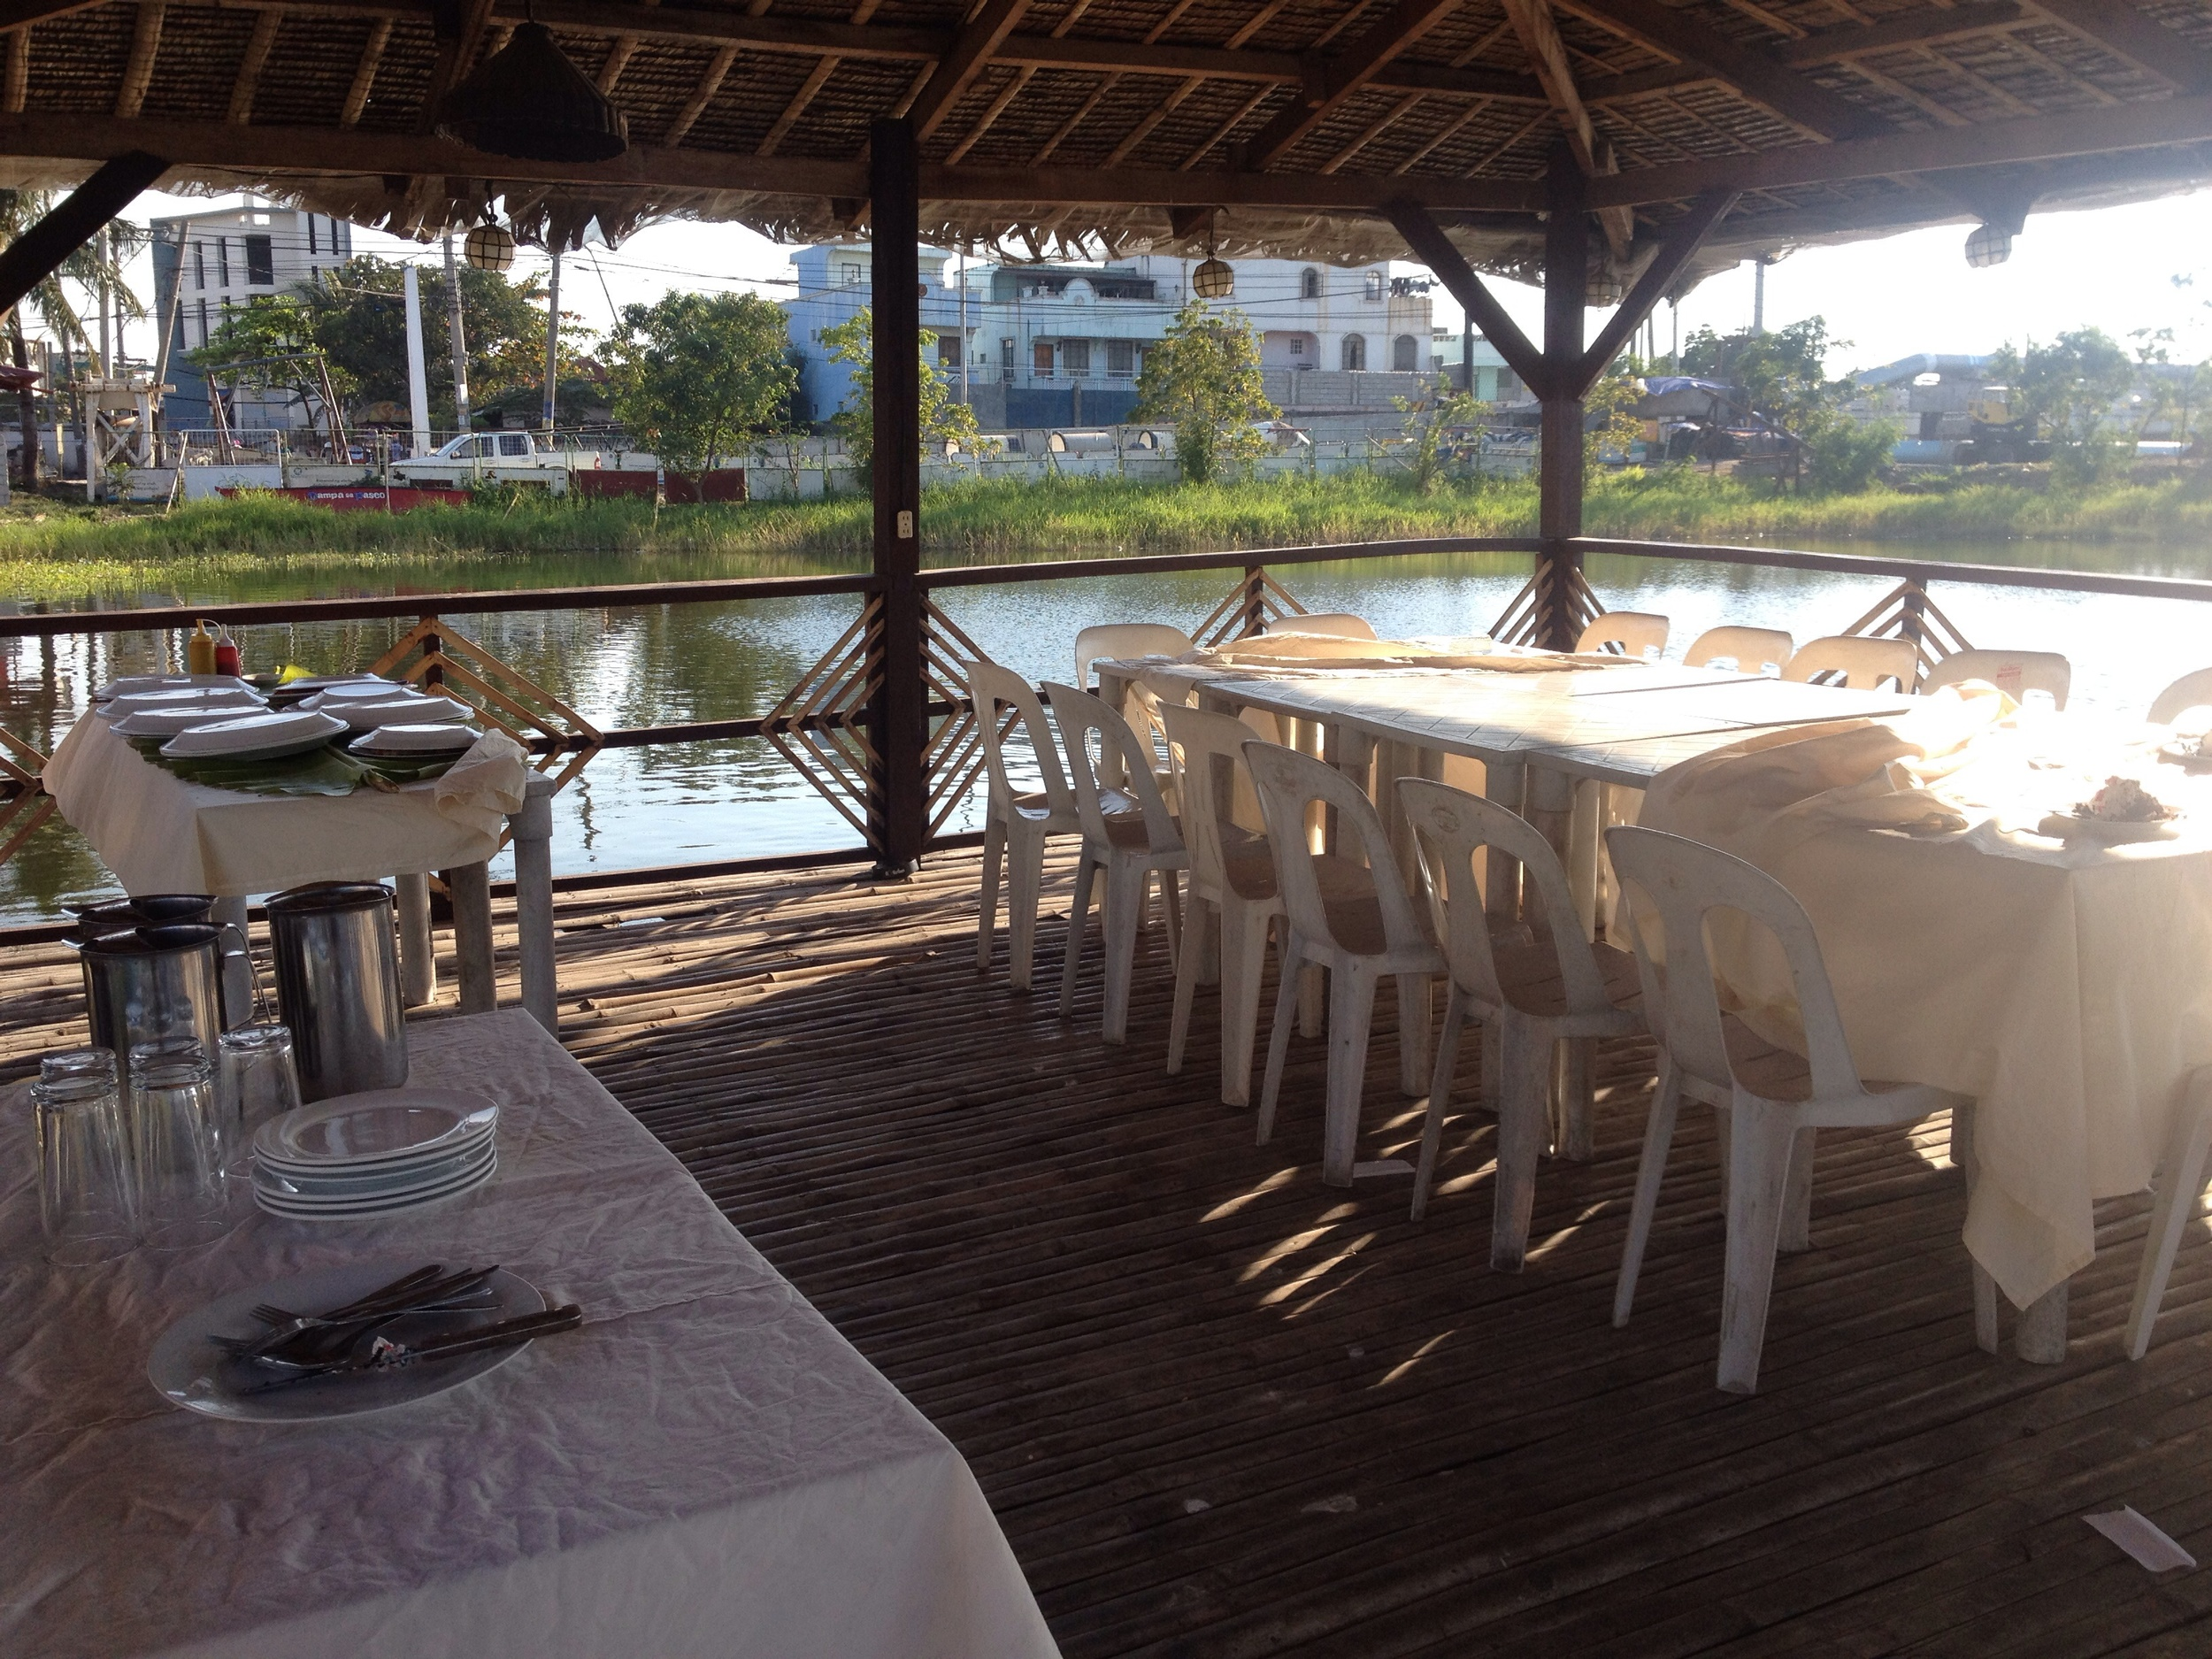 """A floating restaurant at the Dampa sa Paseo, a private """"island"""" in the Paseo de San Antonio area of Malabon."""